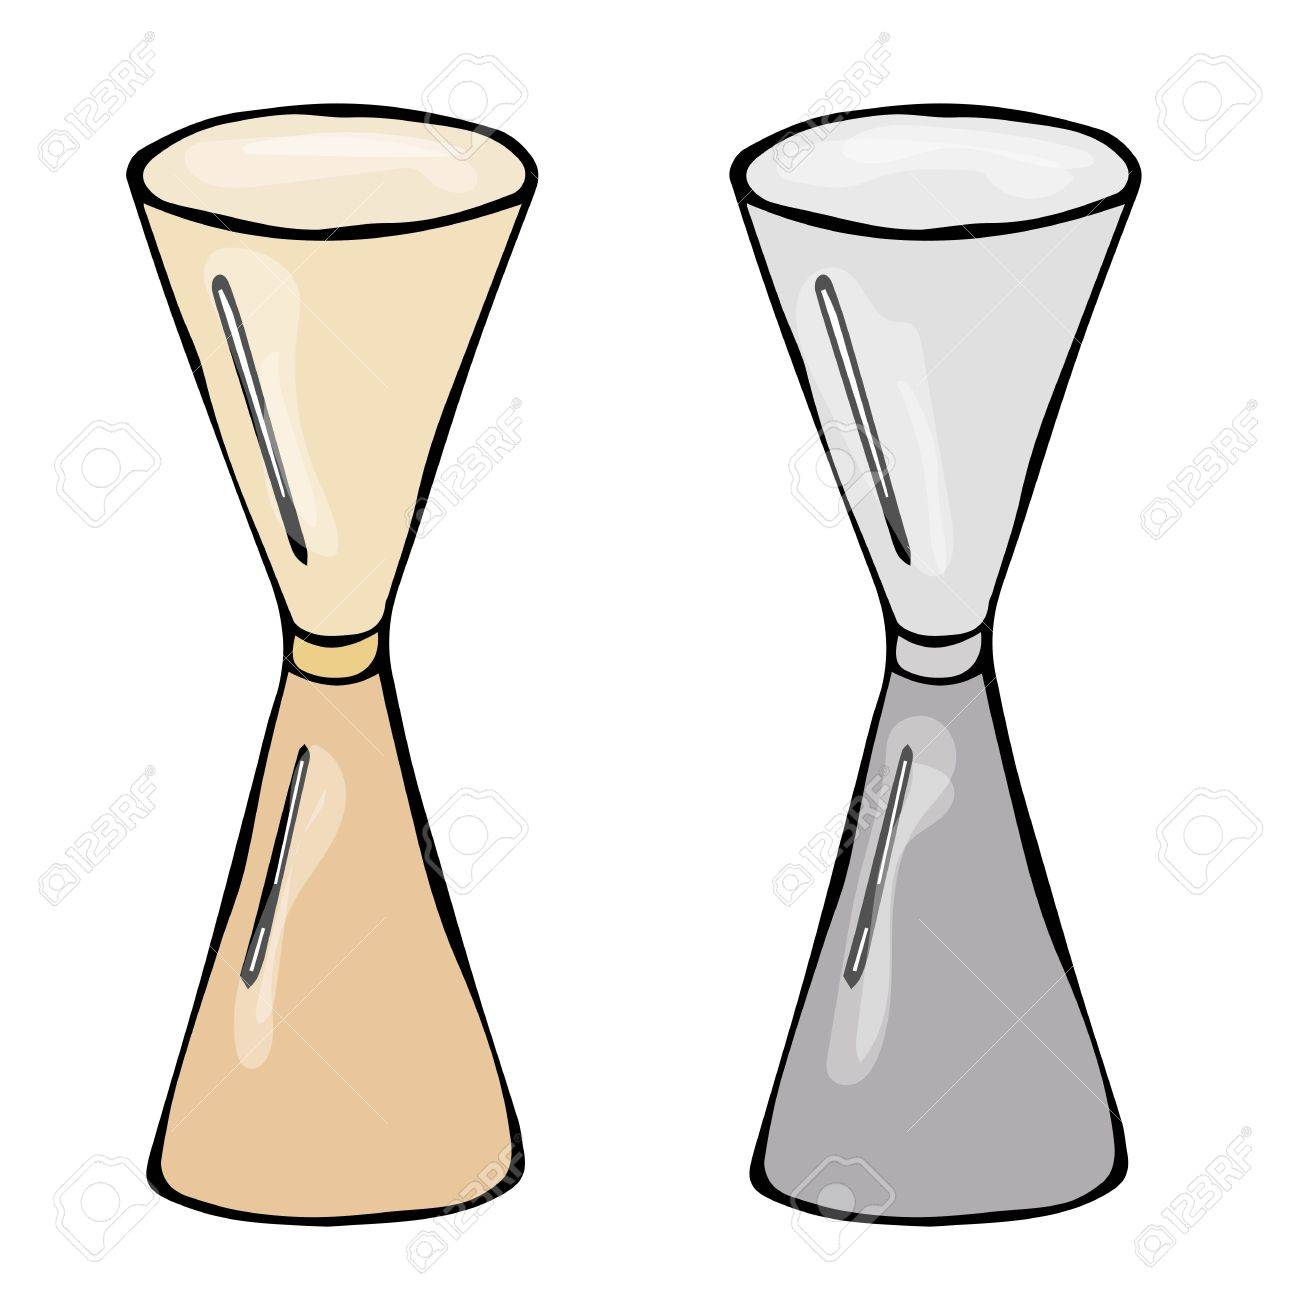 1300x1300 Jigger Cocktail Measuring Cup Sketch. Hand Drawn Vector